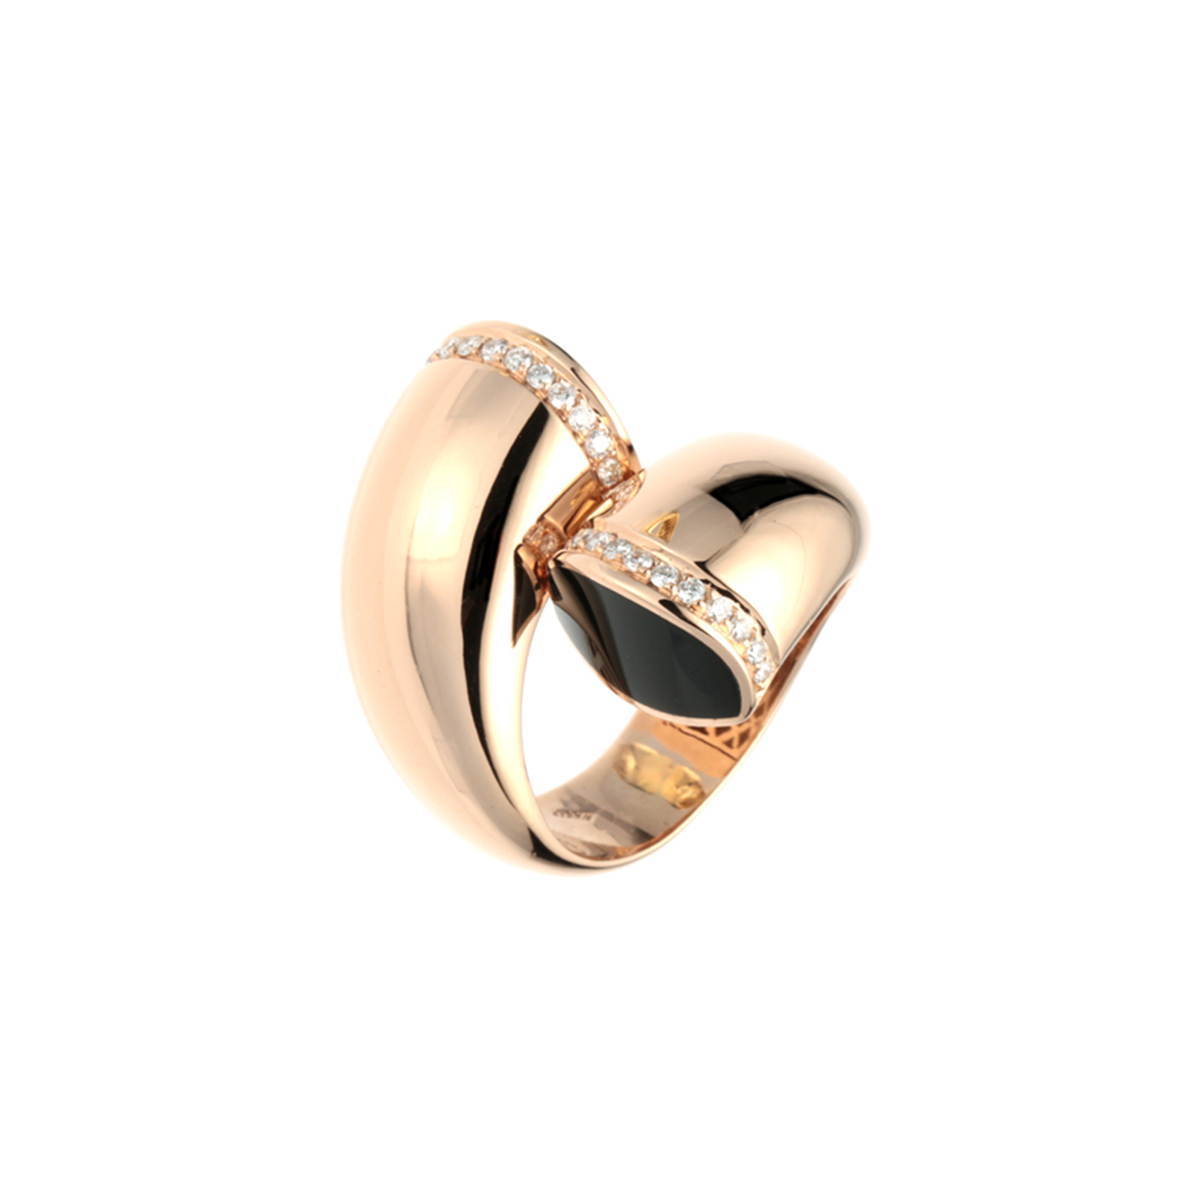 Rose Gold Bypass Ring with Onyx Stones and Diamonds